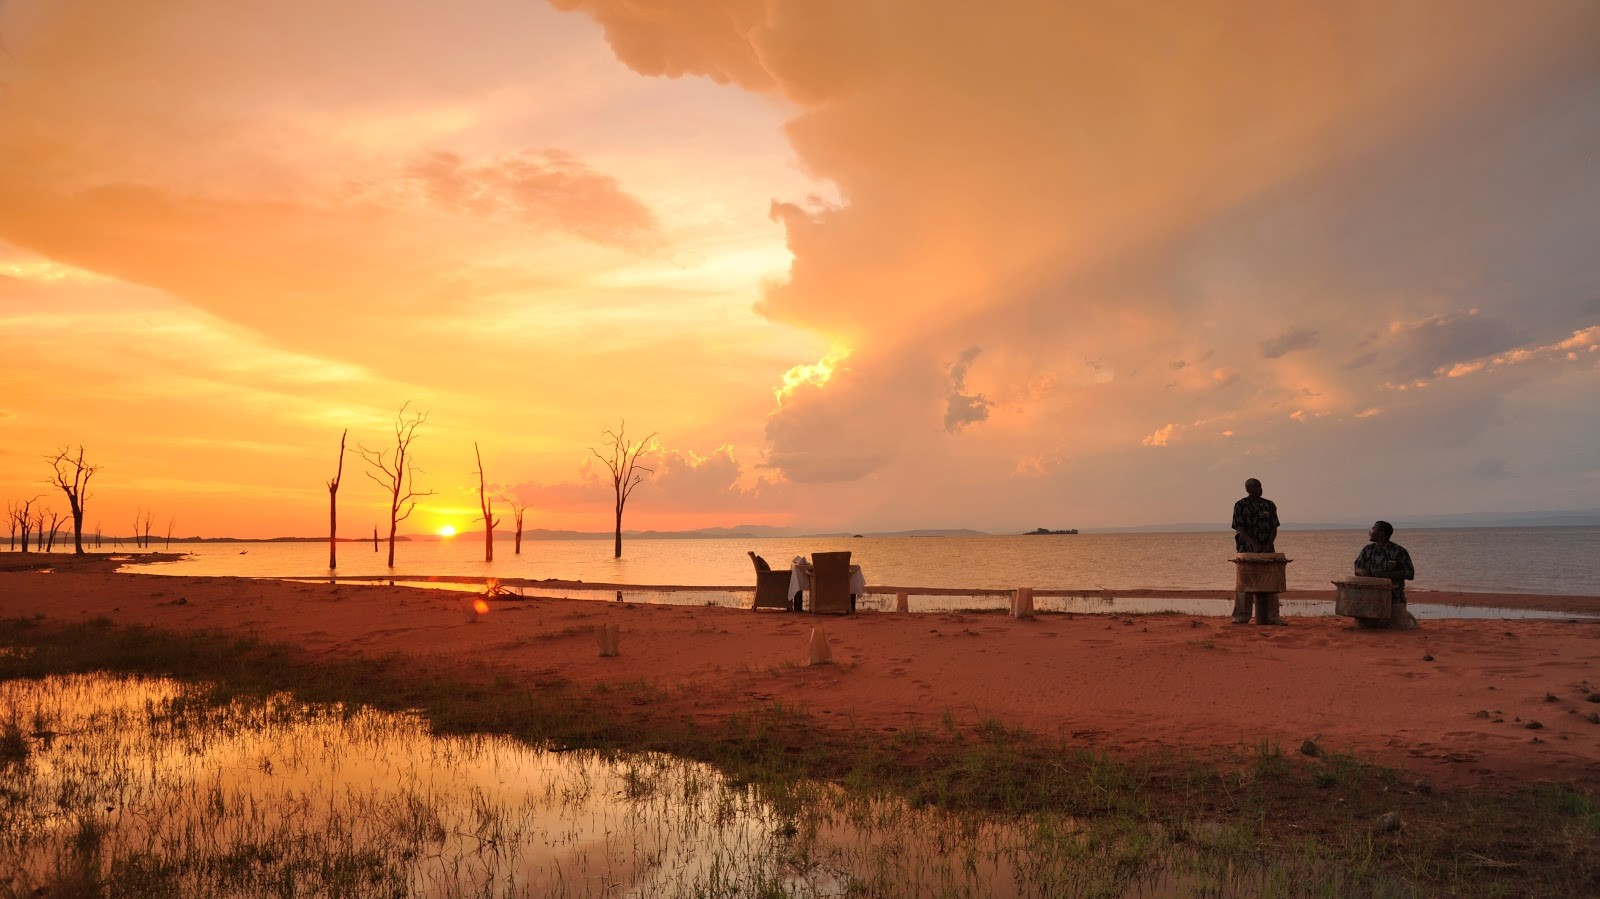 Guides bask in the views of the sun setting on the water of Lake Kariba in Bumi Hills, Zimbabwe